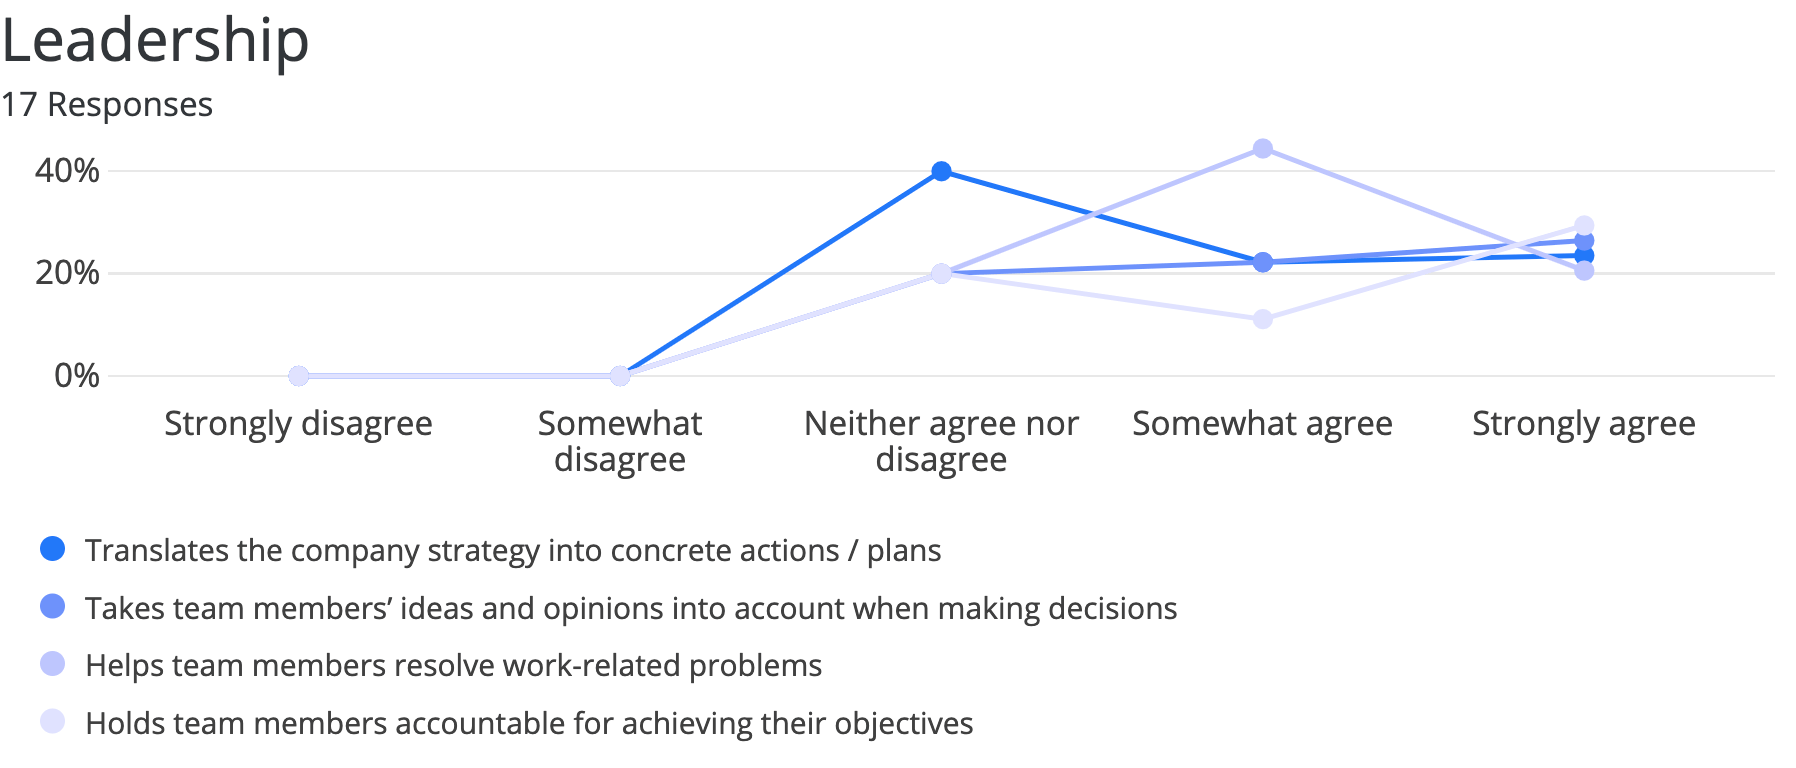 a line graph where leadership qualities each have a line and an evaluation (Strongly Disagree, Somewhat Disagree, Neither agree nor disagree, Somewhat Agree, and Strongly Agree) are the x axis scale